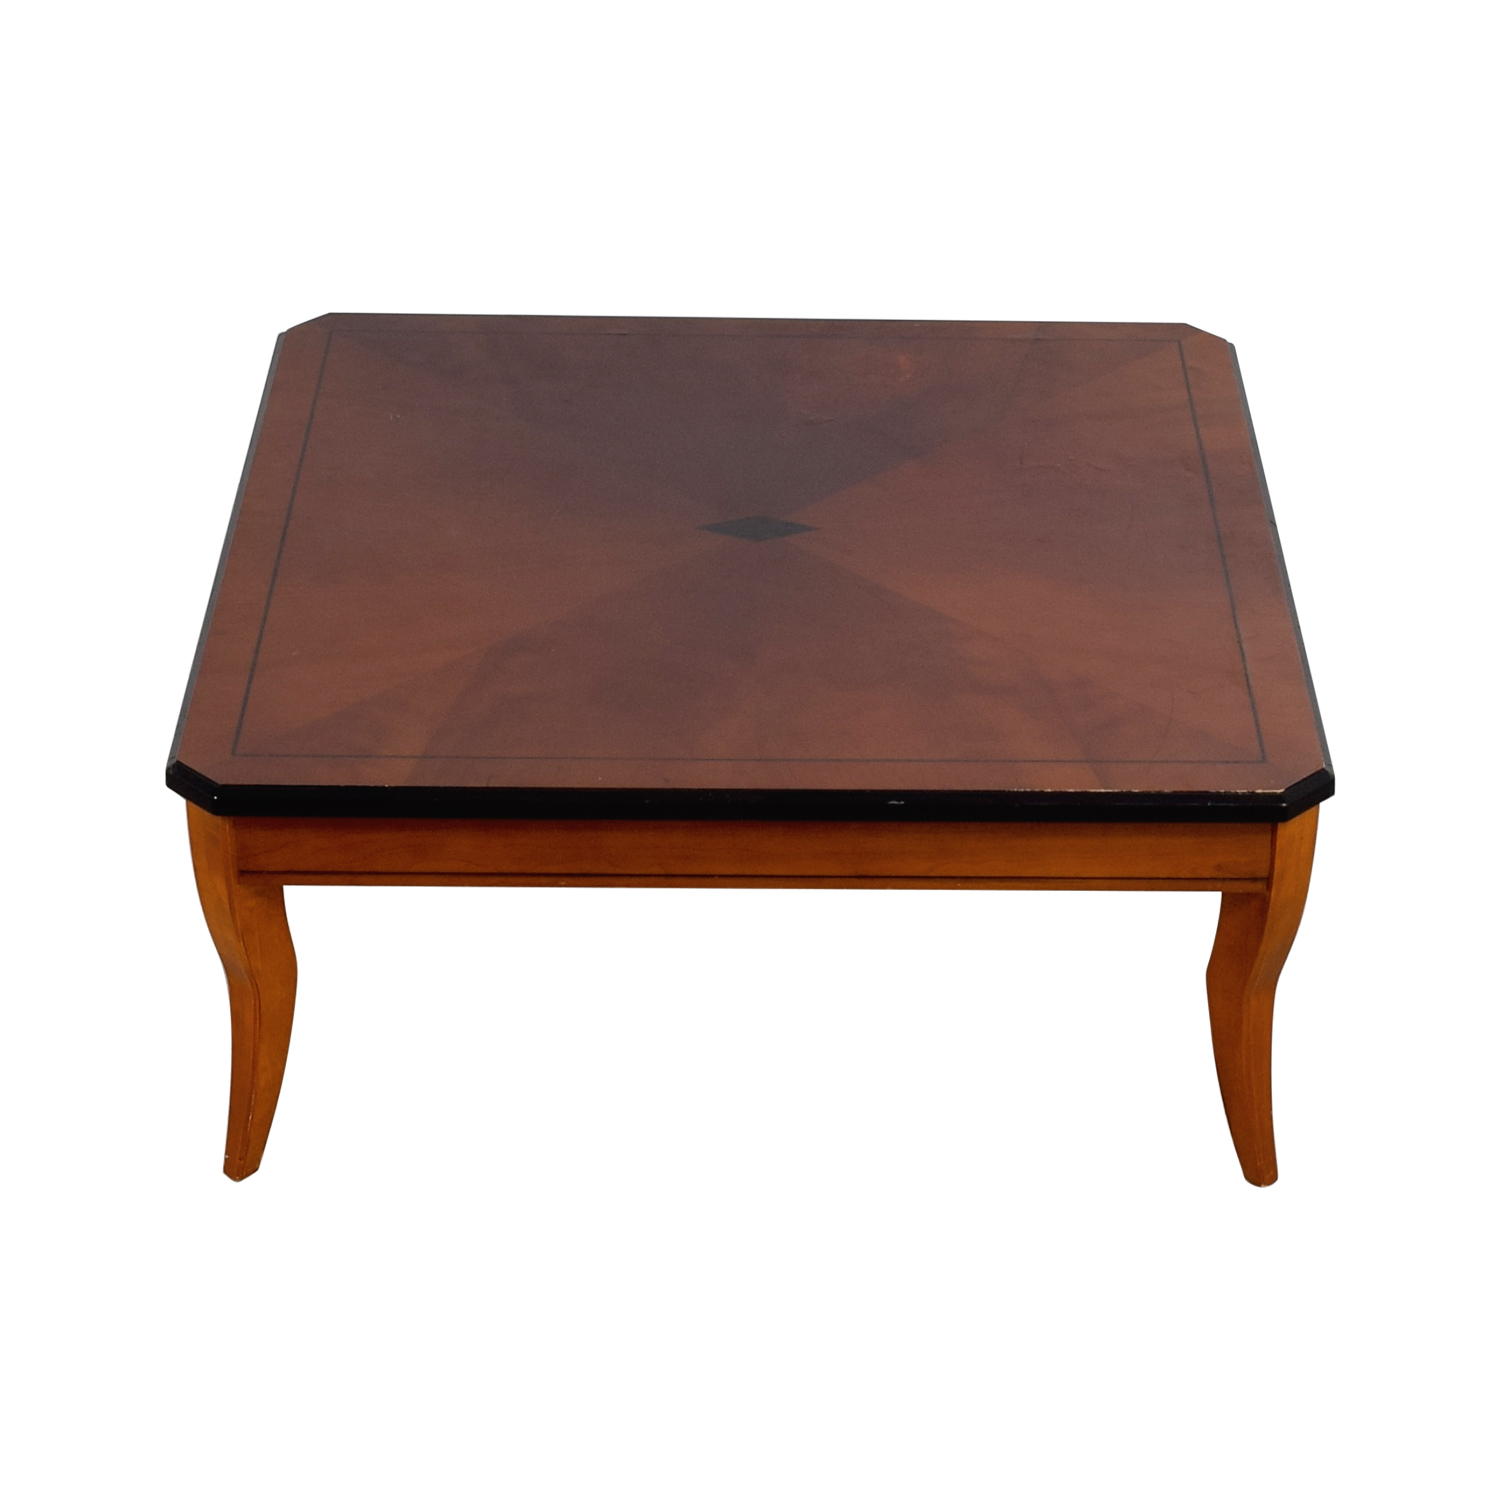 90 off cherry wood square coffee table tables